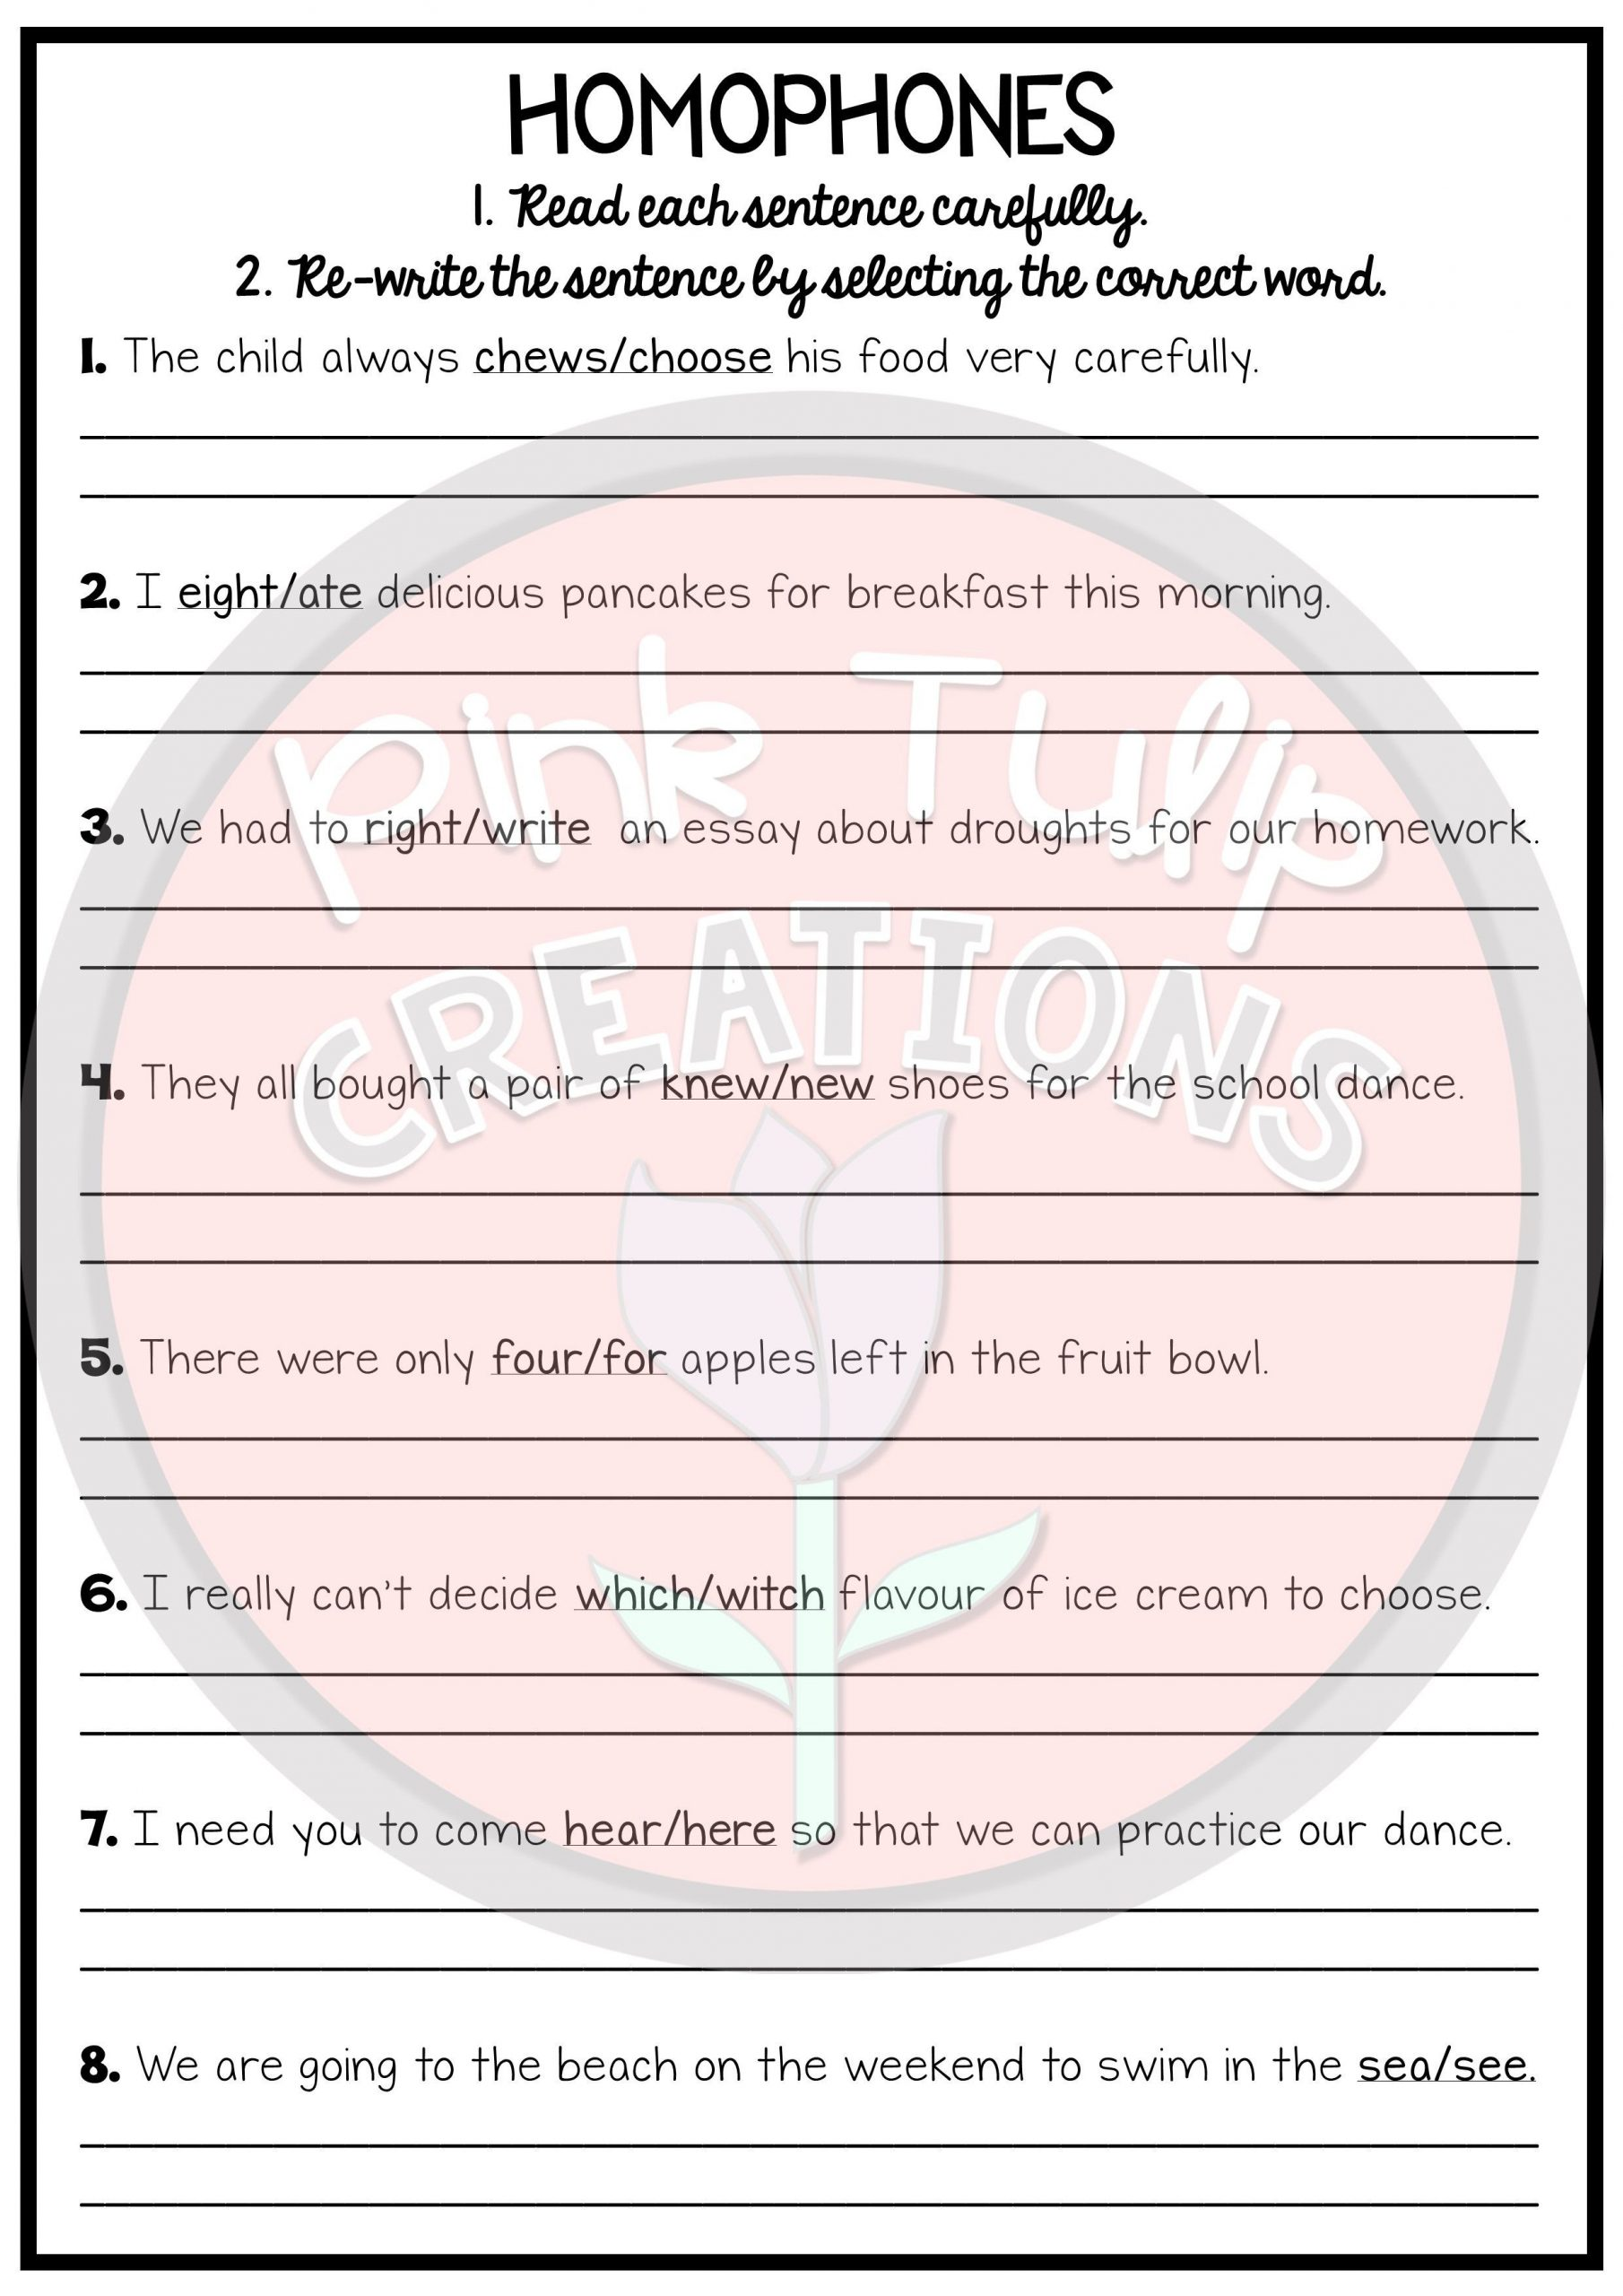 Homophone Worksheets Middle School Homophone Activities Printable Worksheet